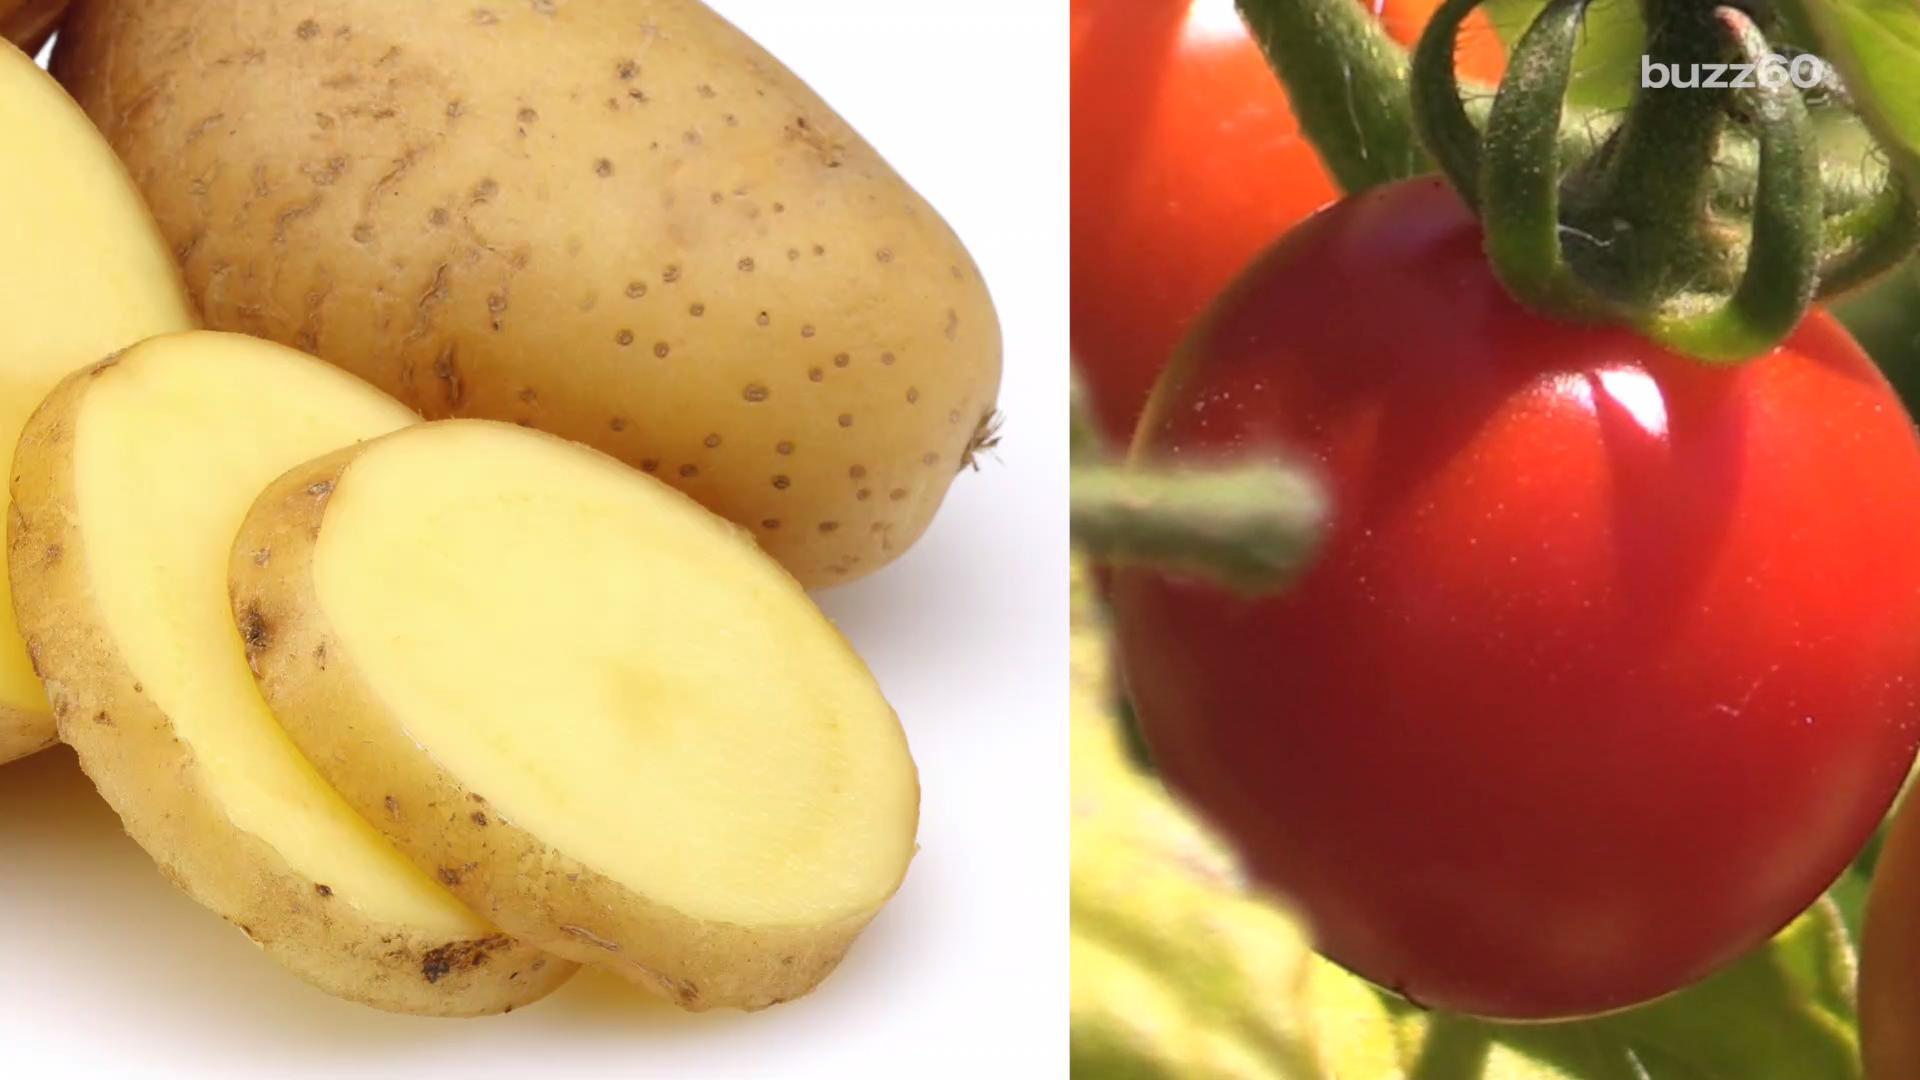 Plant That Grows Fries and Ketchup Going On Sale